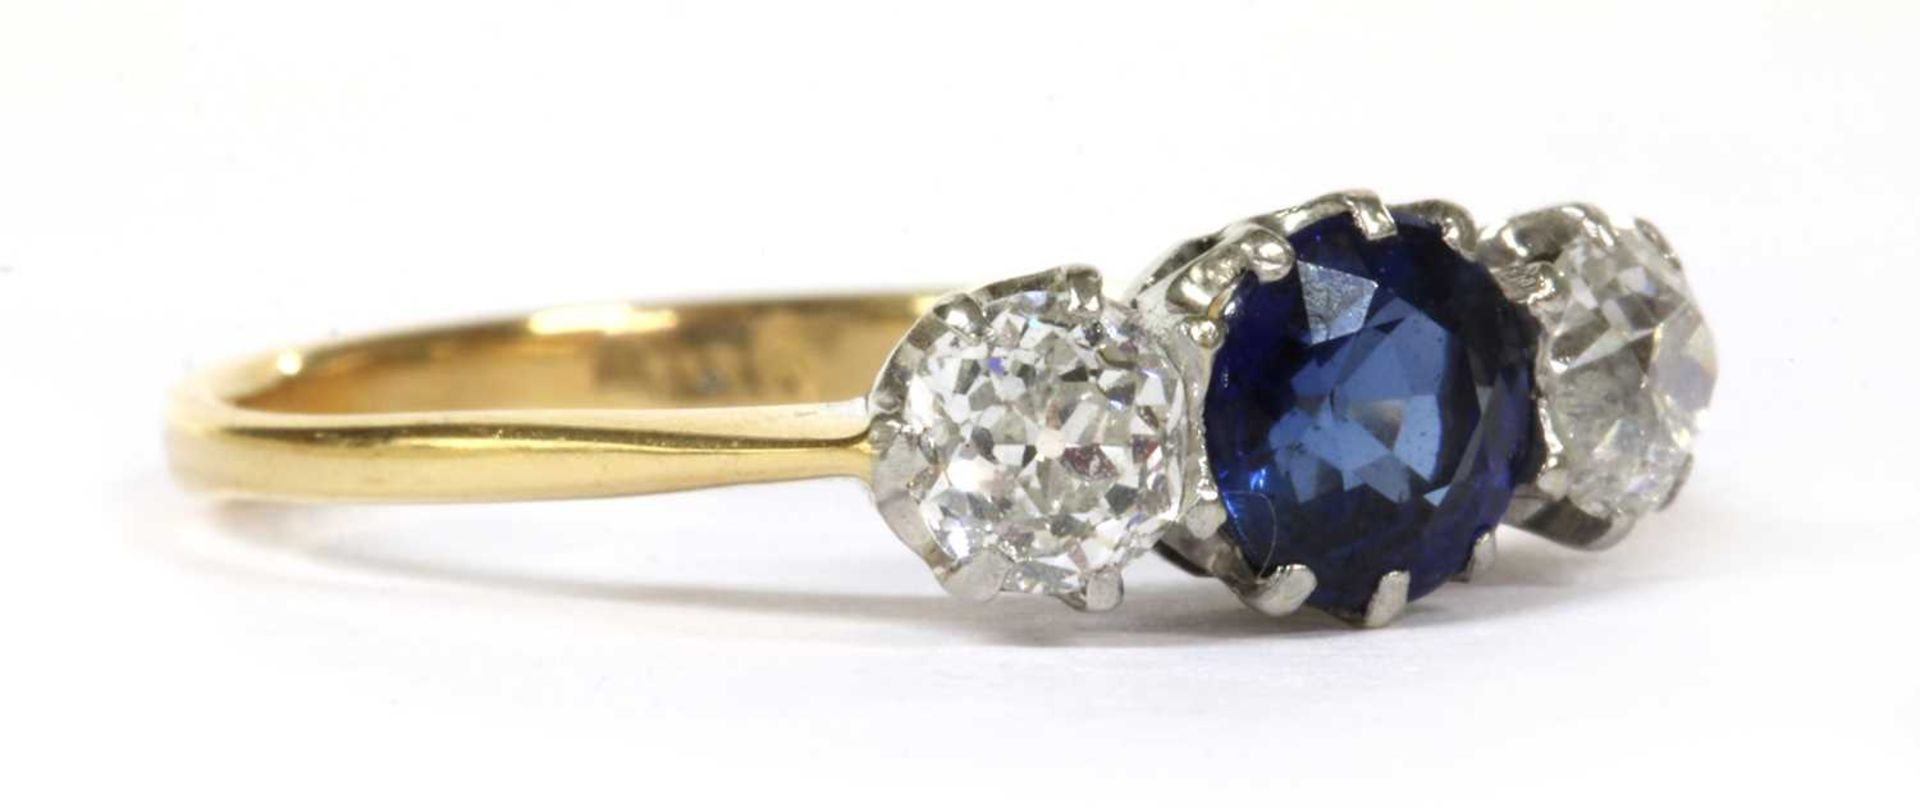 A gold three stone sapphire and diamond ring, - Image 3 of 4